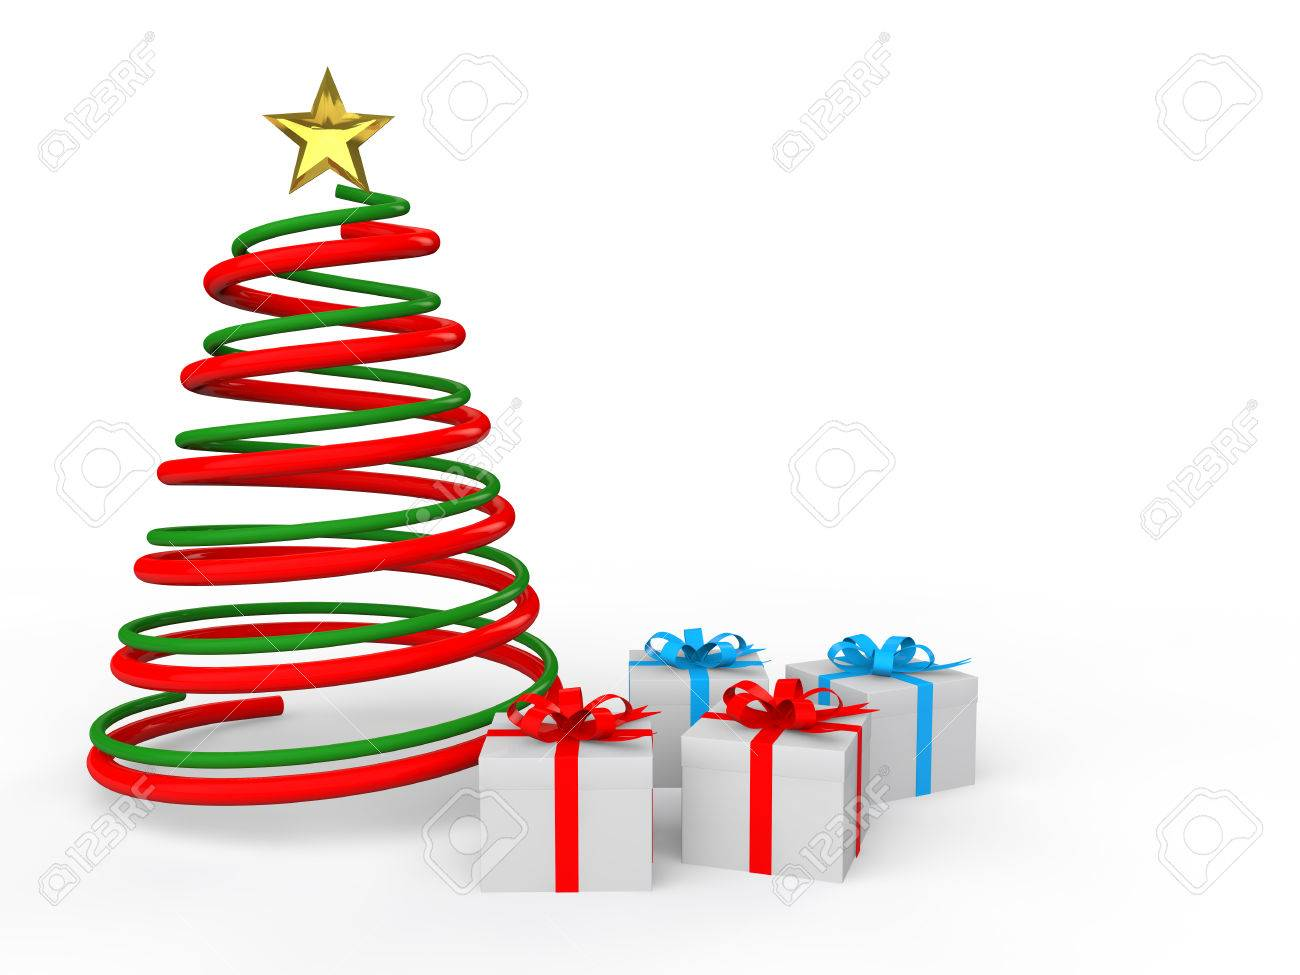 3d Christmas spiral tree and gifts - 49098779